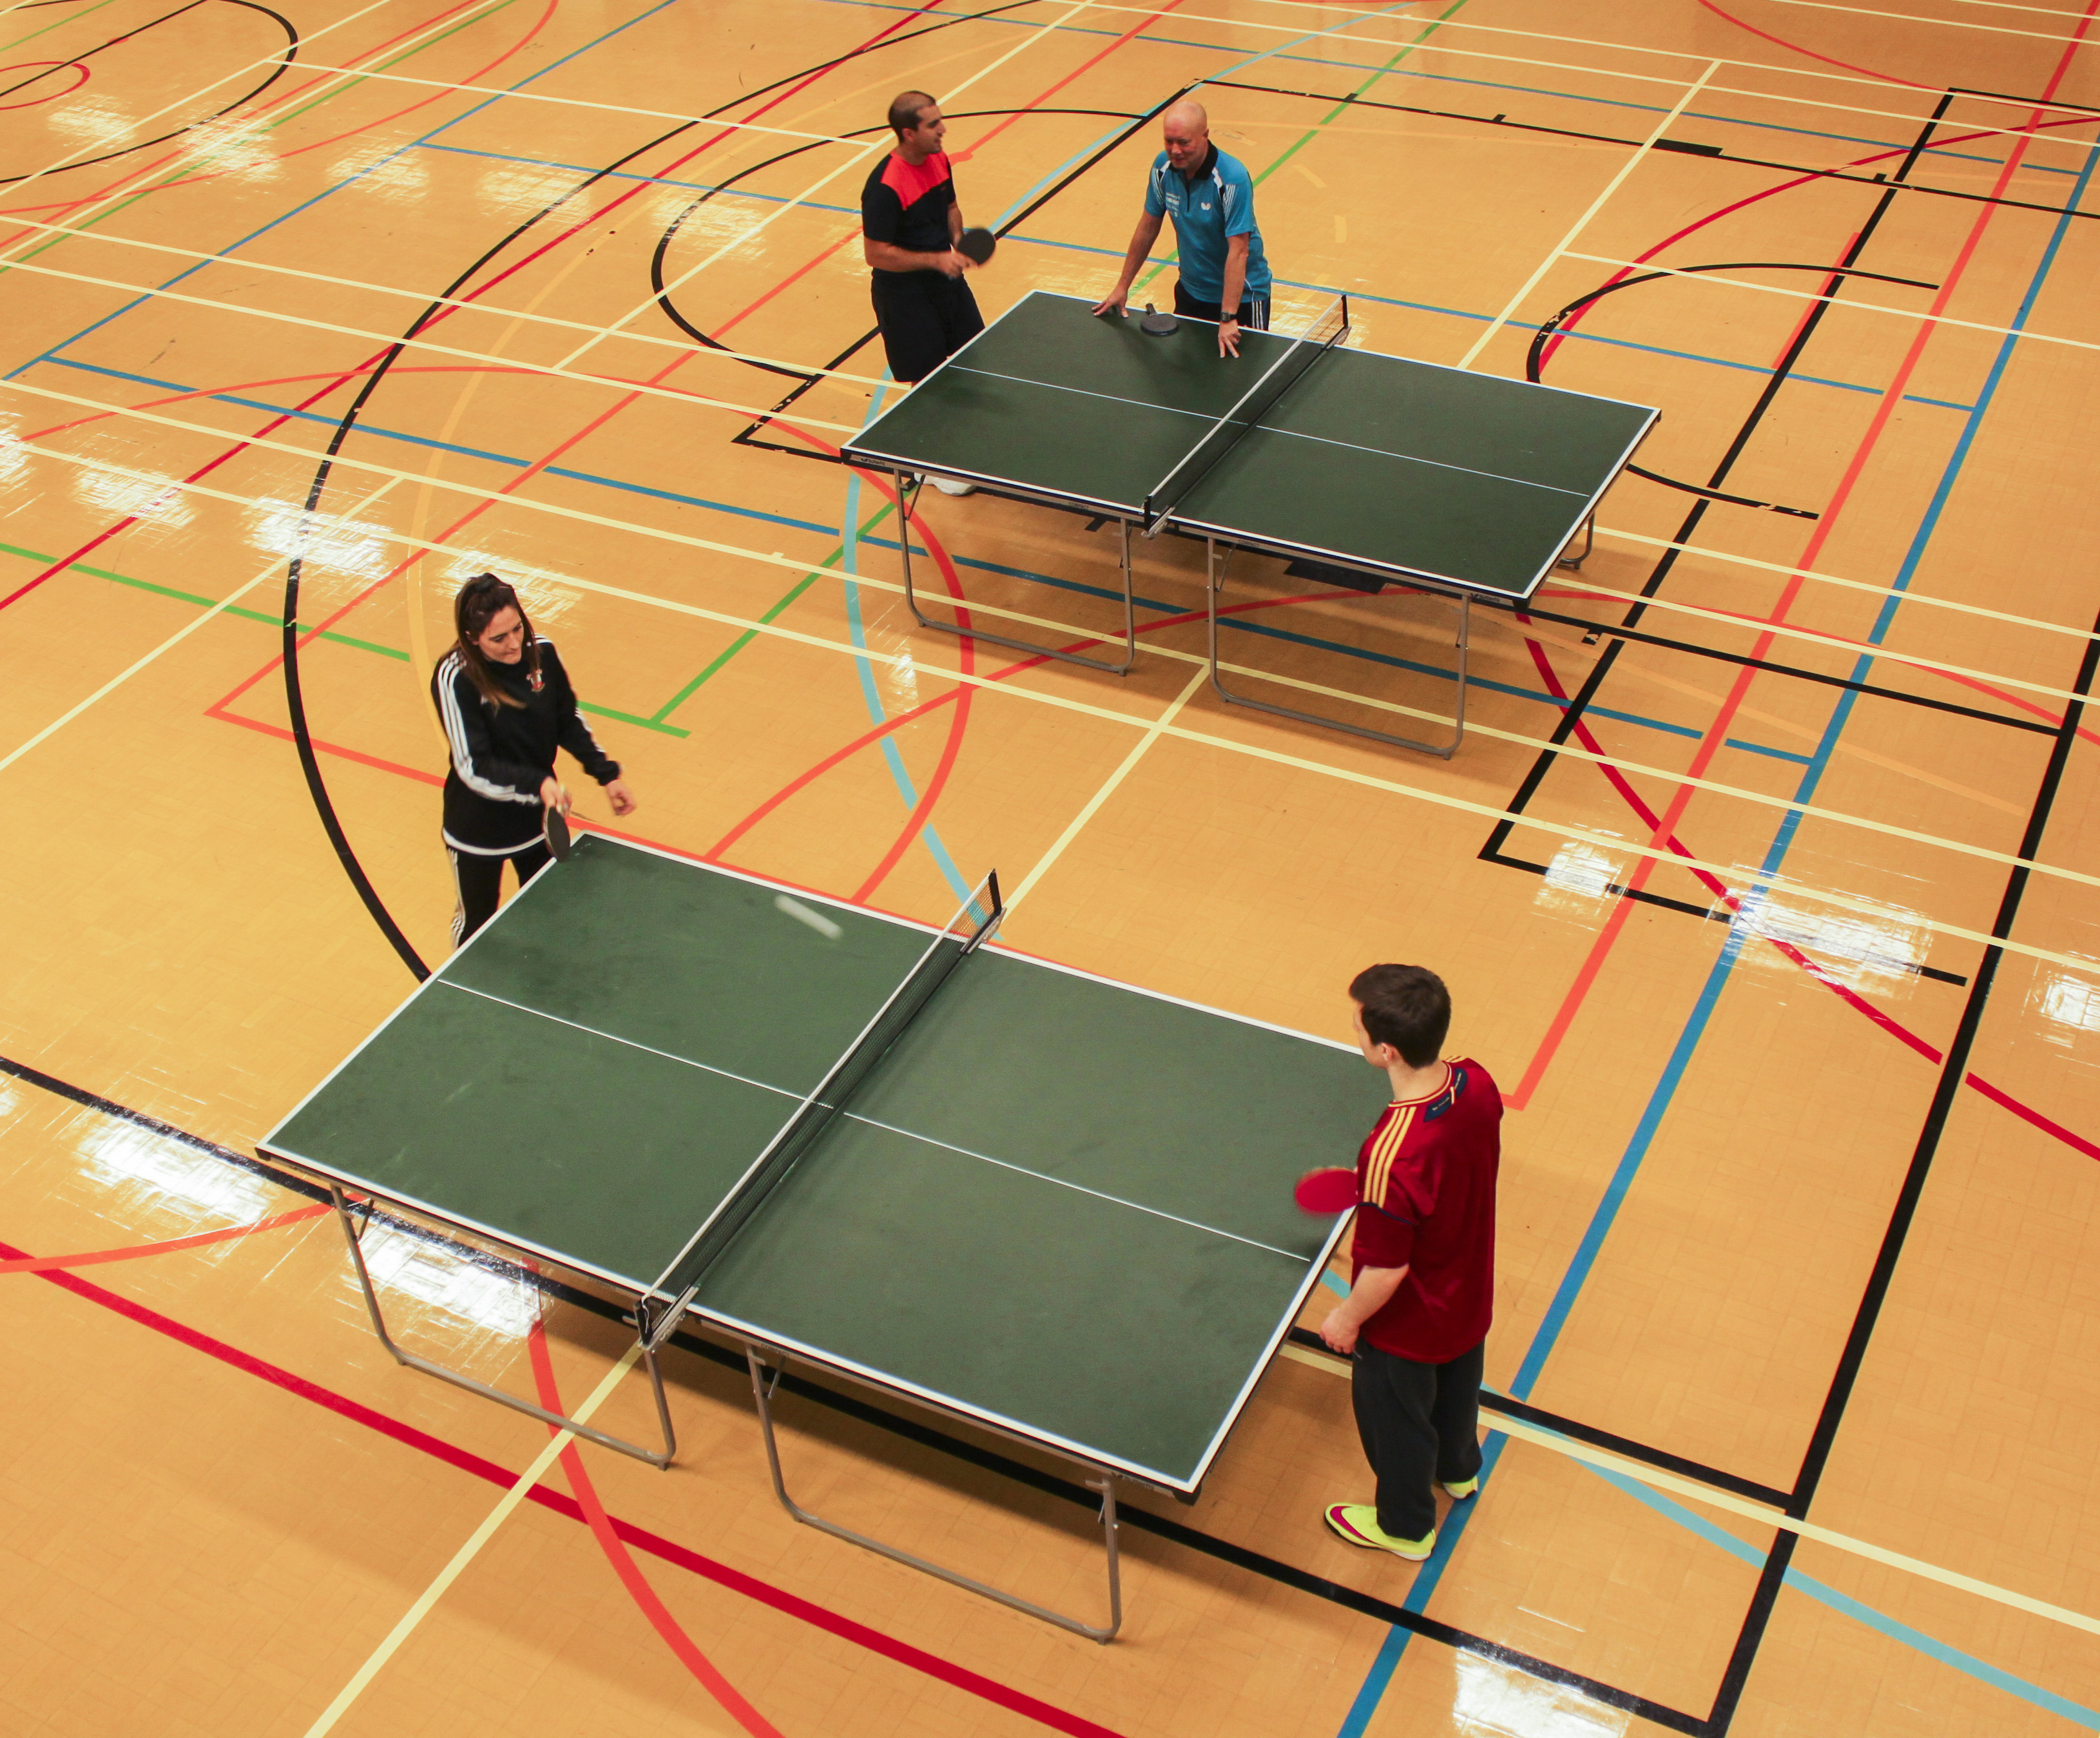 Team Solent table tennis coach: 'The sky is the limit'